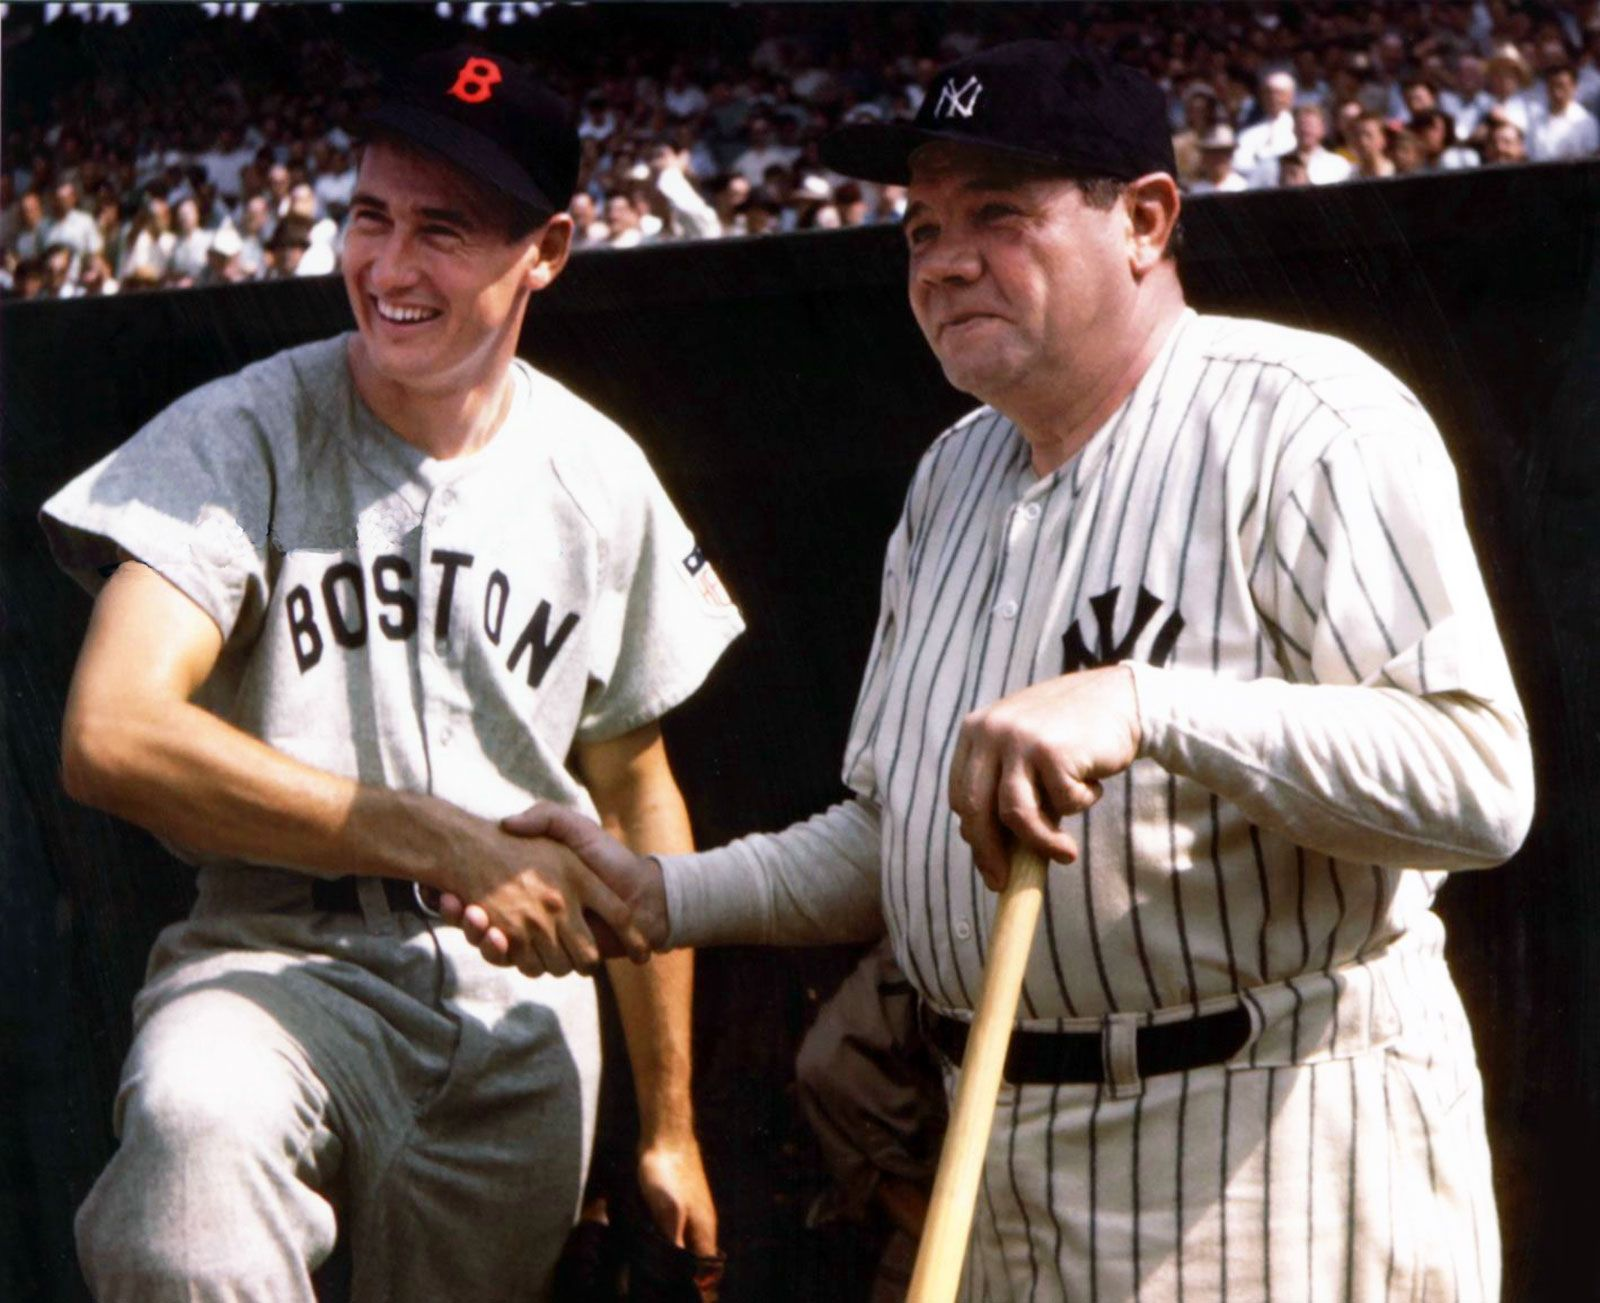 The Great Bambino The Sultan Of Swat The Titan Of Terror The Colossus Of Clout The King Of Crash Babe Ruth Babe Ruth Ted Williams Ted